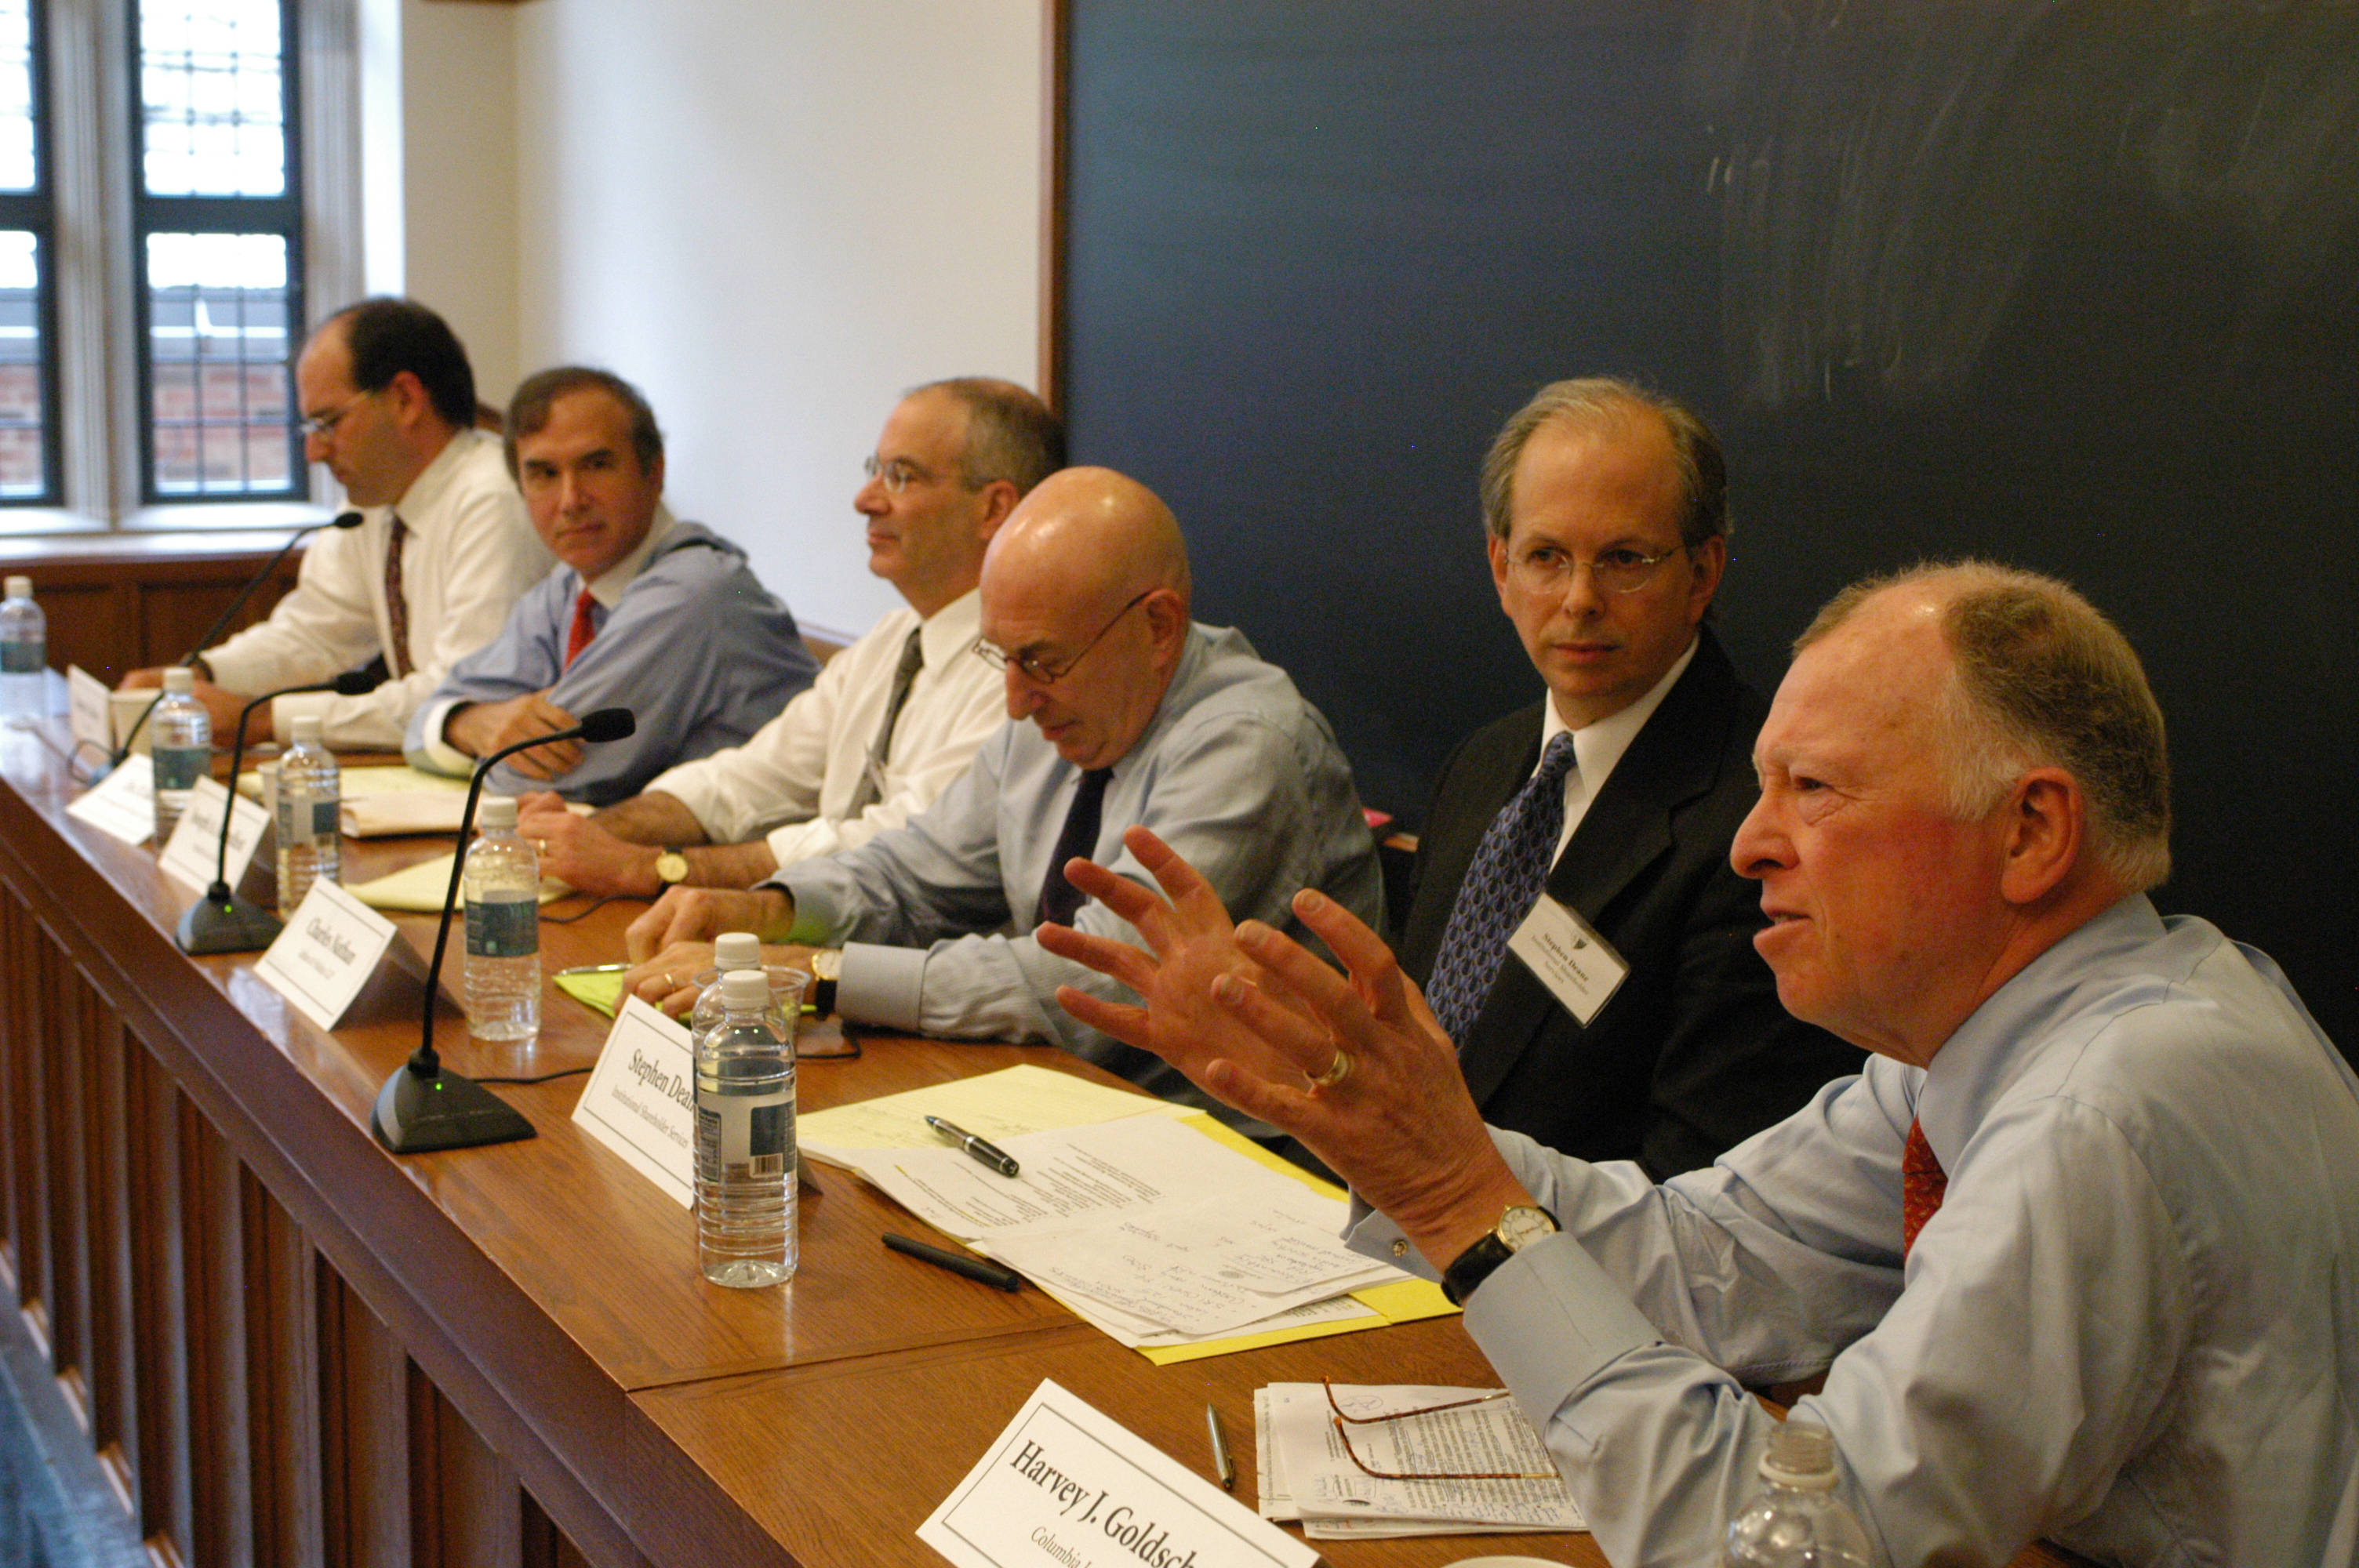 Damon Silvers, Eric Roiter, Stanford Law Prof. Joseph Grundfest, Charles Nathan '65, Stephen Deane, and Columbia Law Prof. Harvey Goldschmid